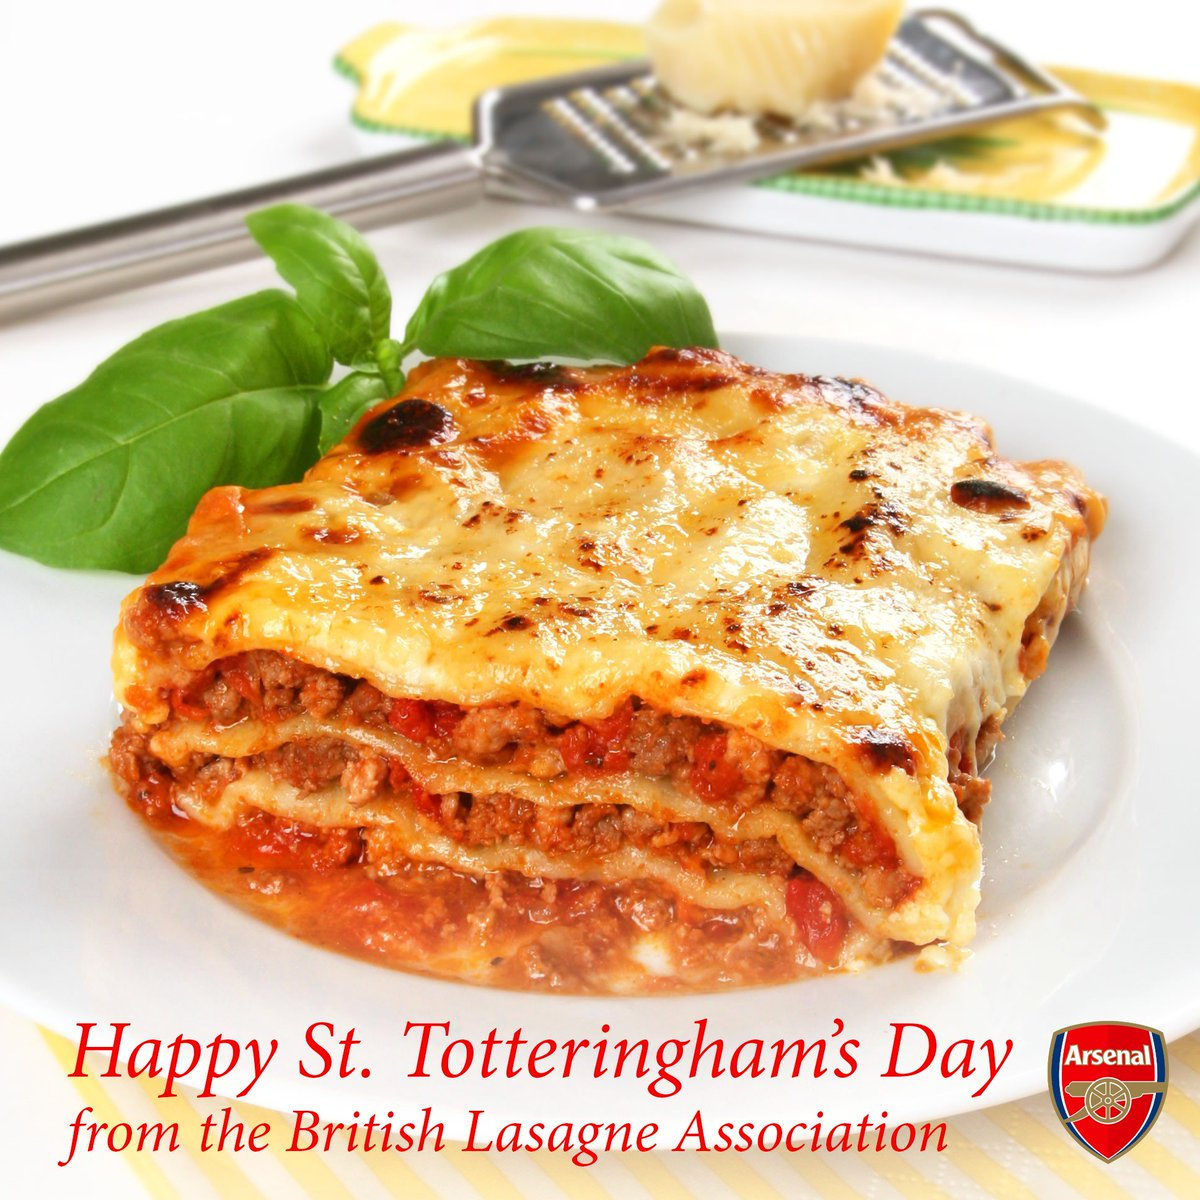 Happy #sttotteringhamsday from the British Lasagne Association. #afc #arsenal #tottenham #unluckyspurs https://t.co/8qf9NN8Nac